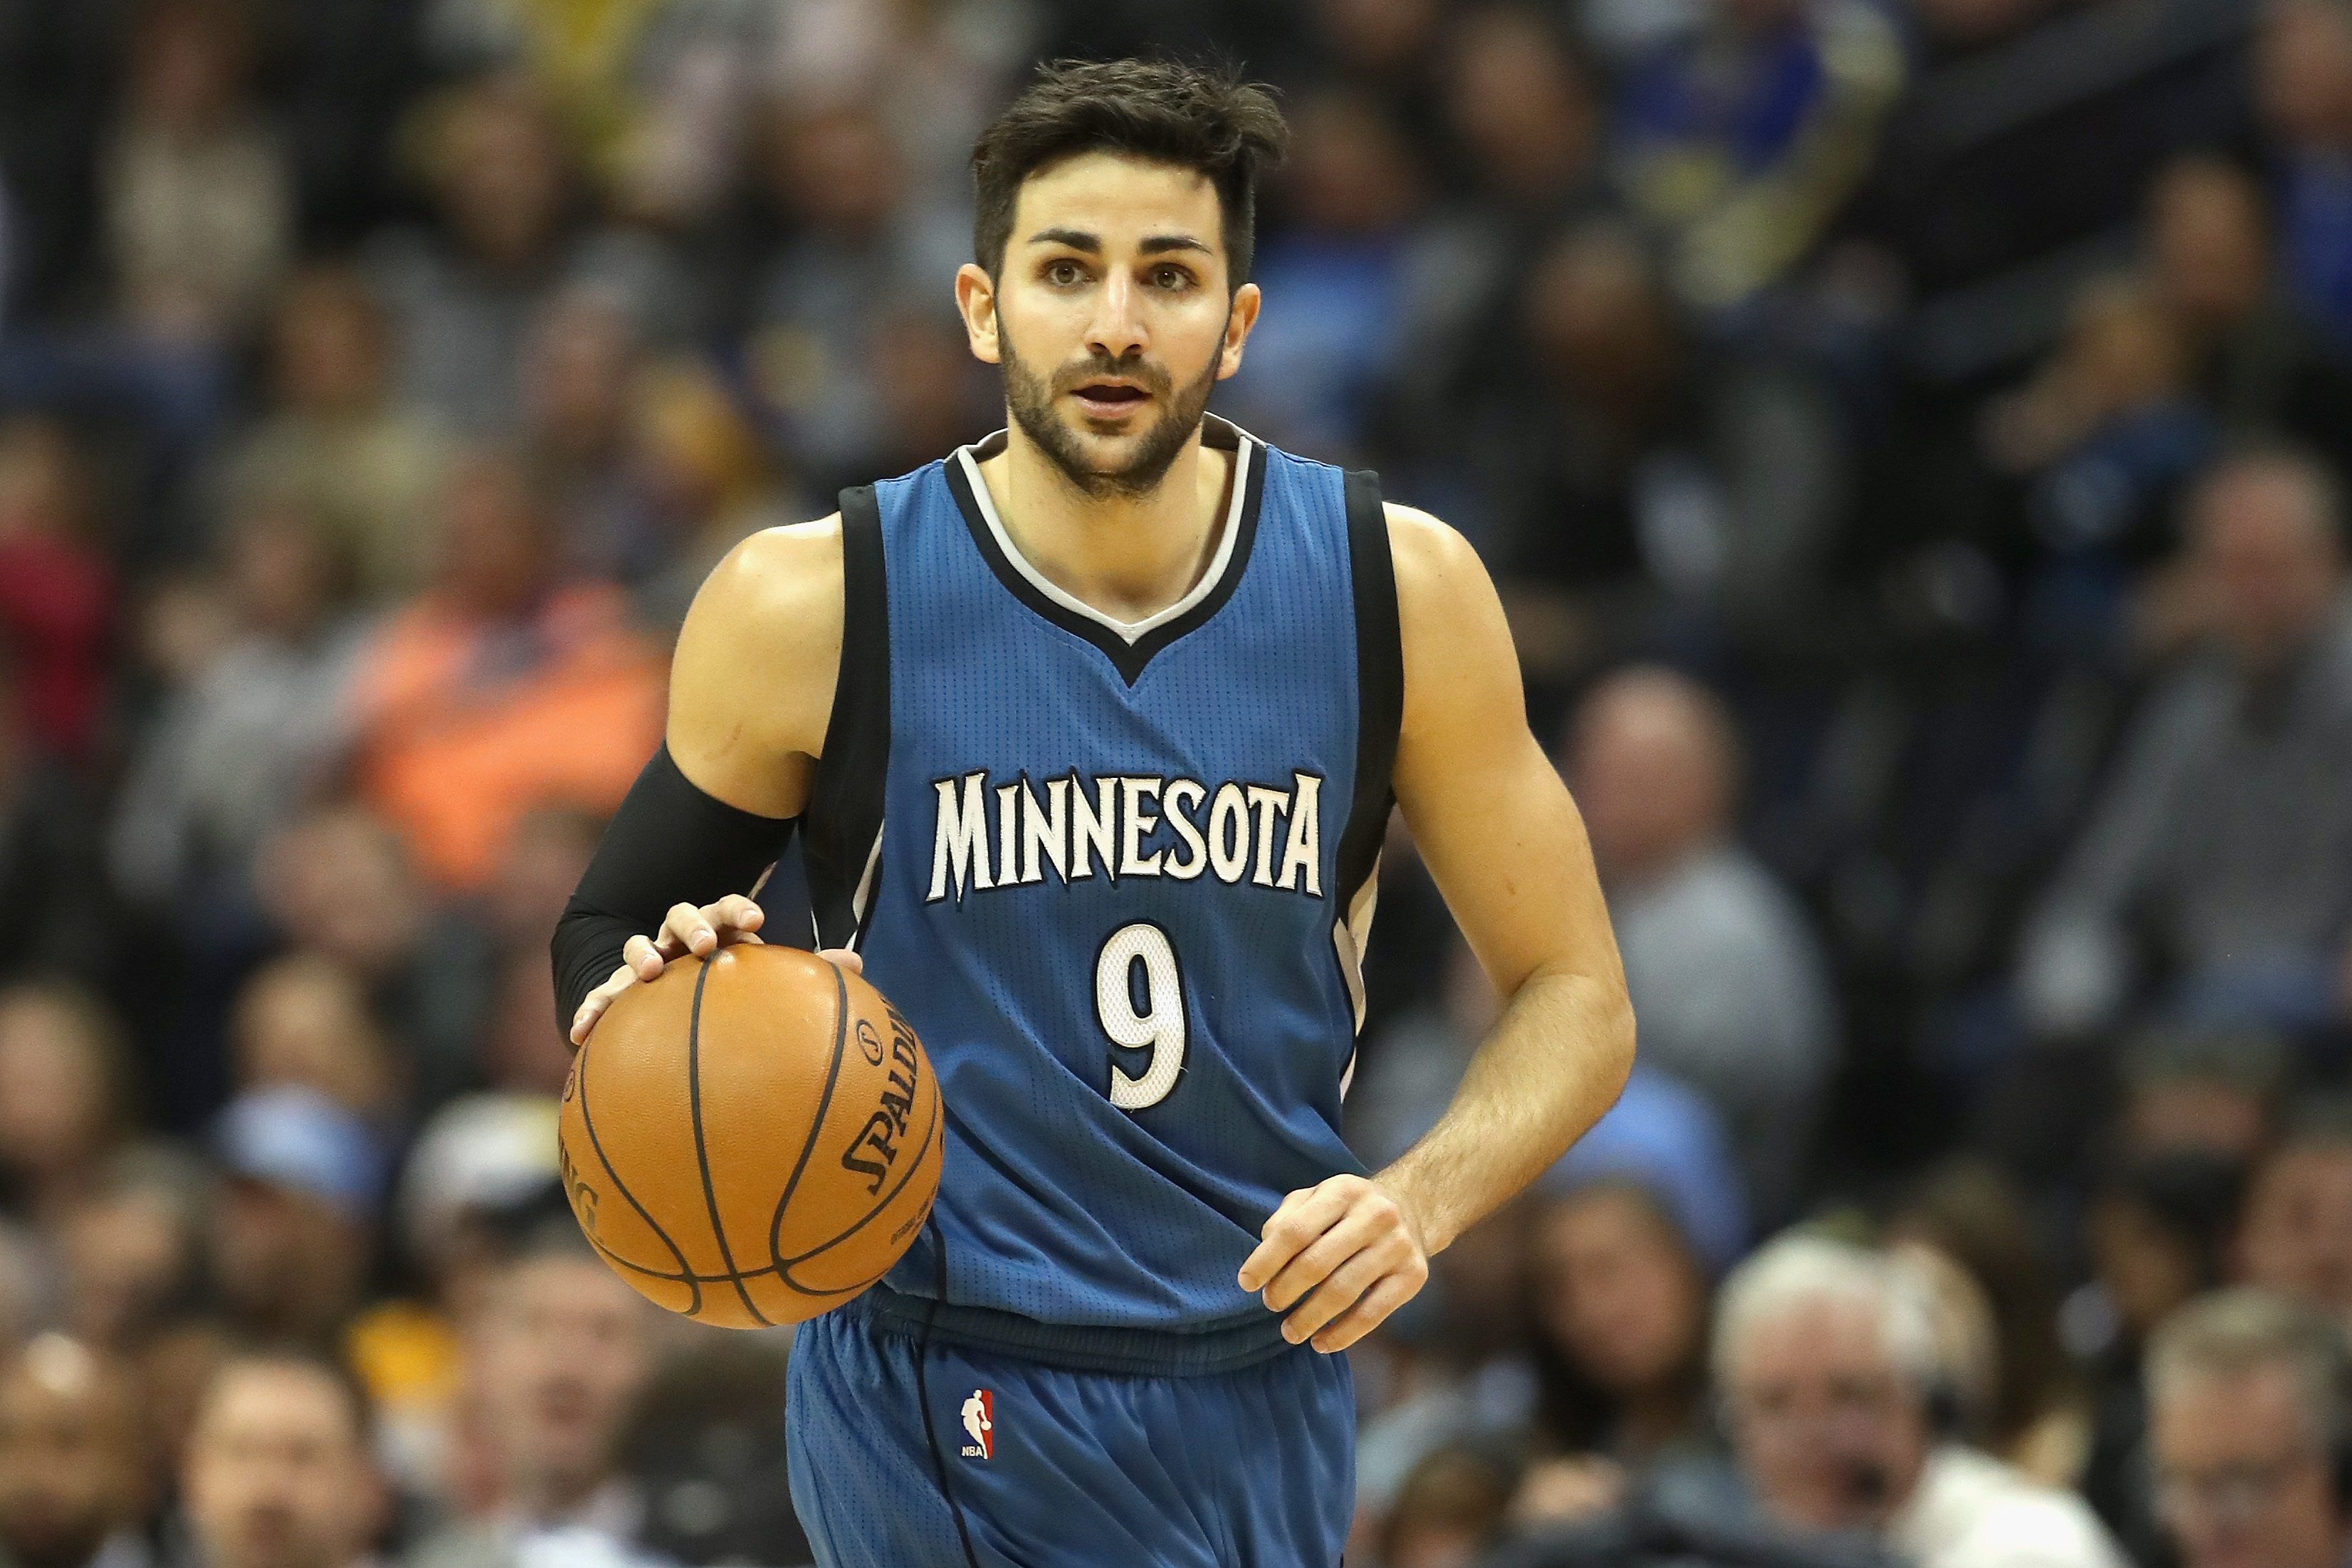 e261b2864 What the Ricky Rubio trade means for the Utah Jazz. NBA Denver Nuggets at Minnesota  Timberwolves u2013 ...